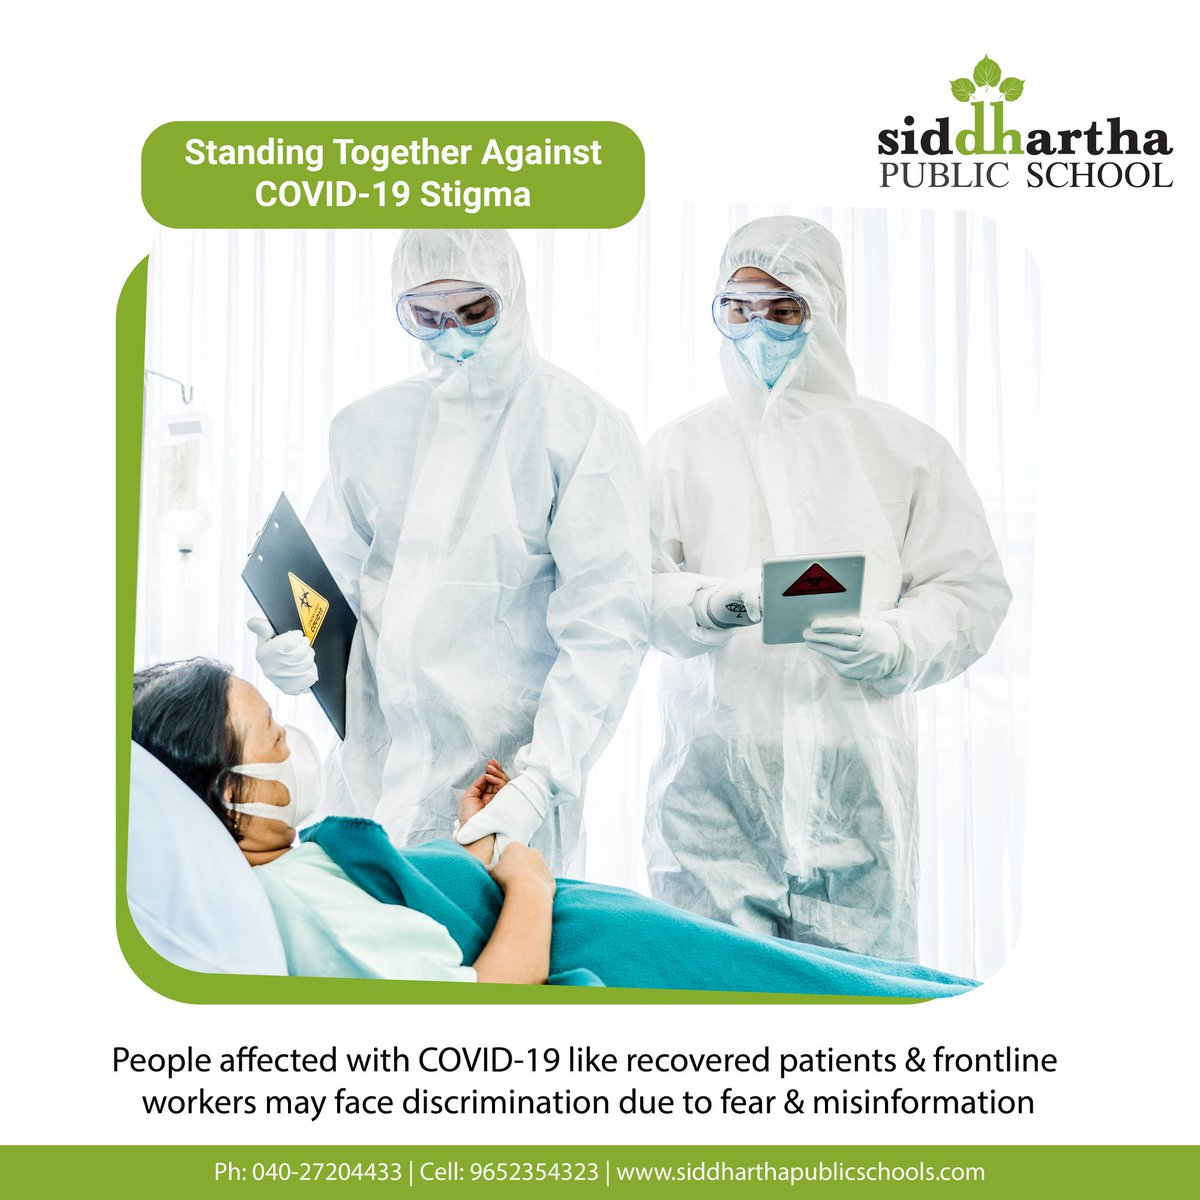 Standing Together Against COVID-19 Stigma:  People affected with COVID-19 like recovered patients& frontline workers may face discrimination due to fear & misinformation.   #COVID19 #AgainstCOVID19 #COVID19Stigm #IndiaFightsCorona #Coronapic.twitter.com/EsJbObn5LE